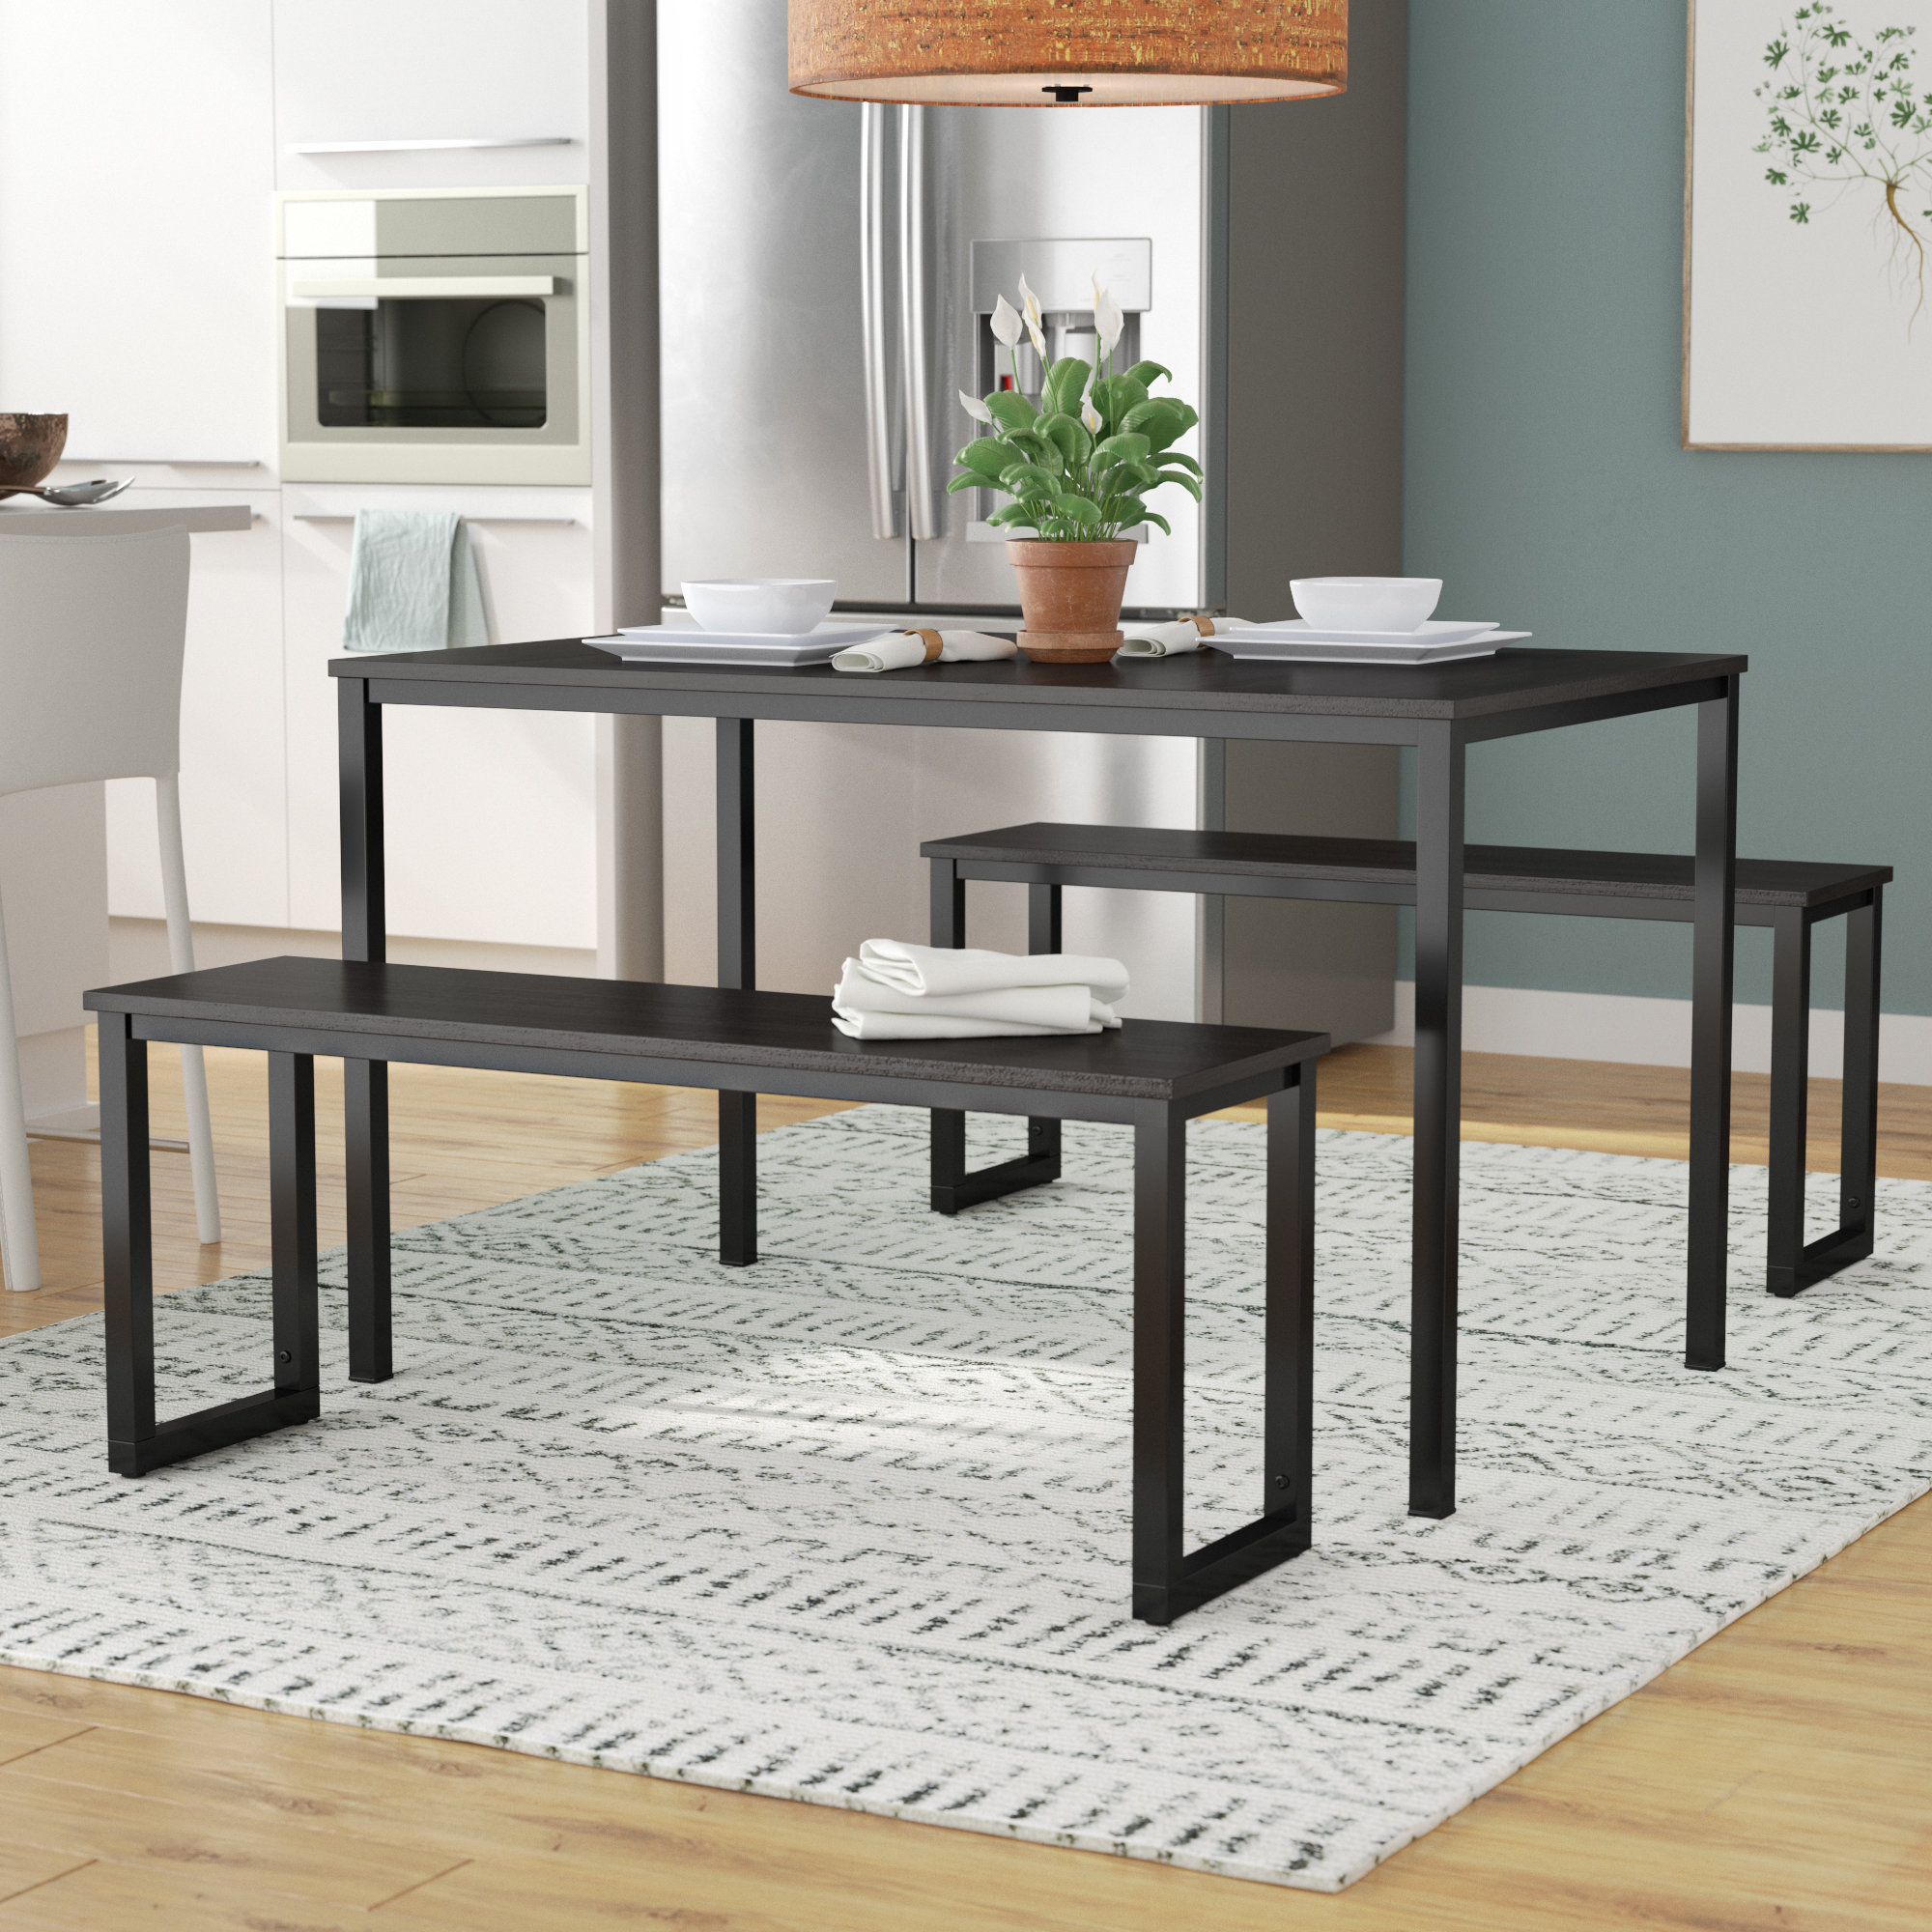 3 Piece Dining Sets Pertaining To Most Up To Date Frida 3 Piece Dining Table Set (View 6 of 20)